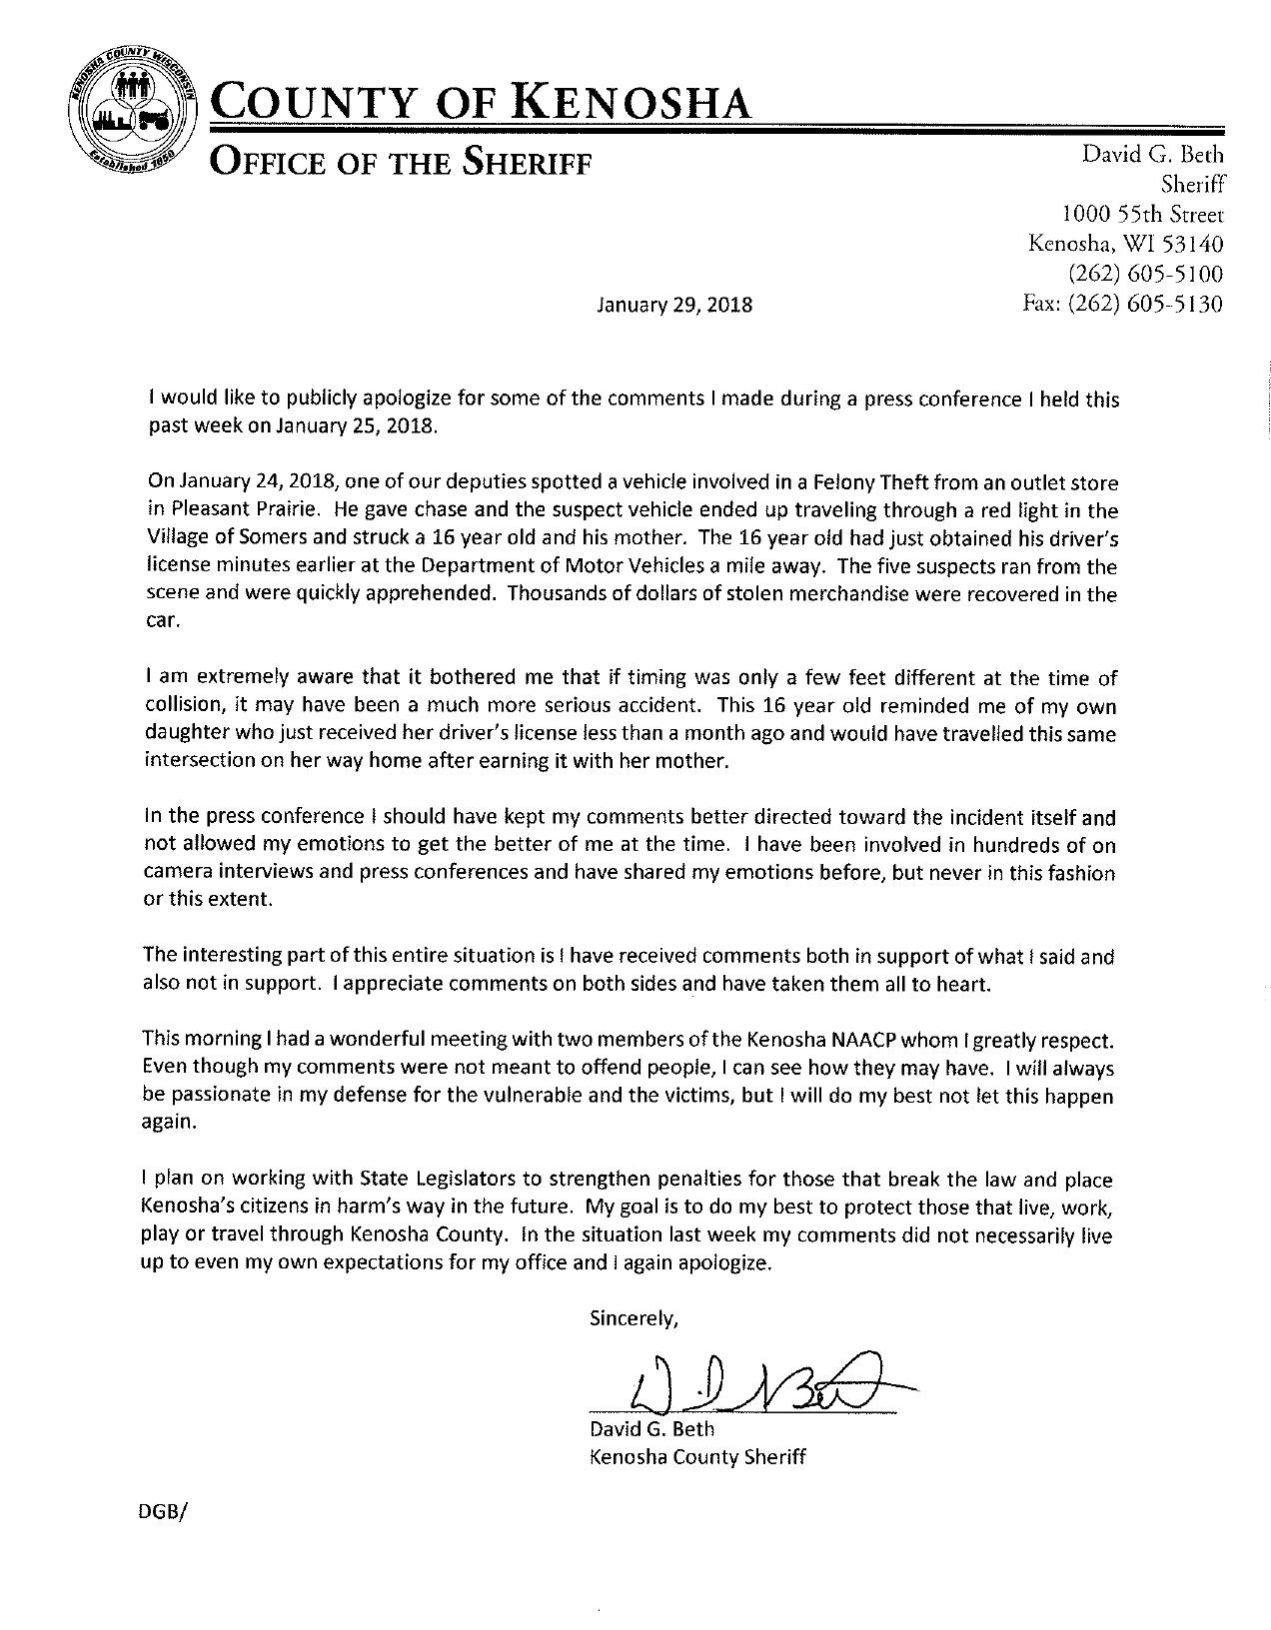 Sheriff Beths Apology Letter kenoshanewscom